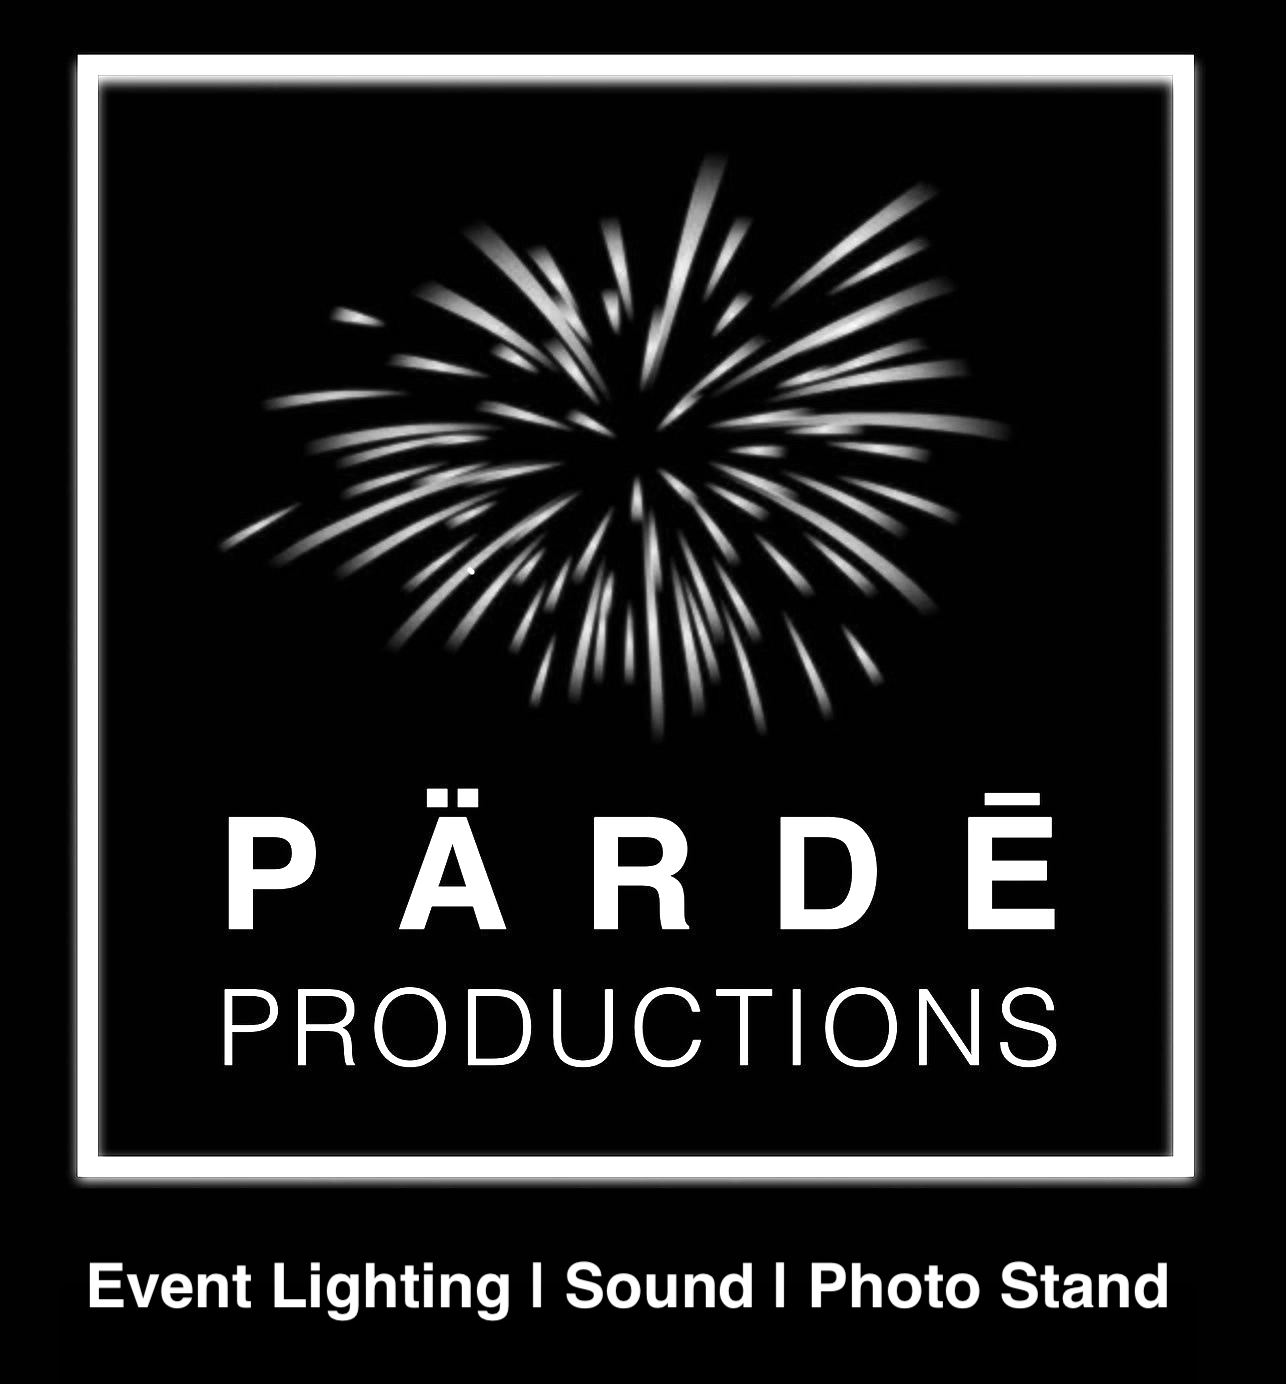 pärdē productions event lighting sound photo stands photo booths